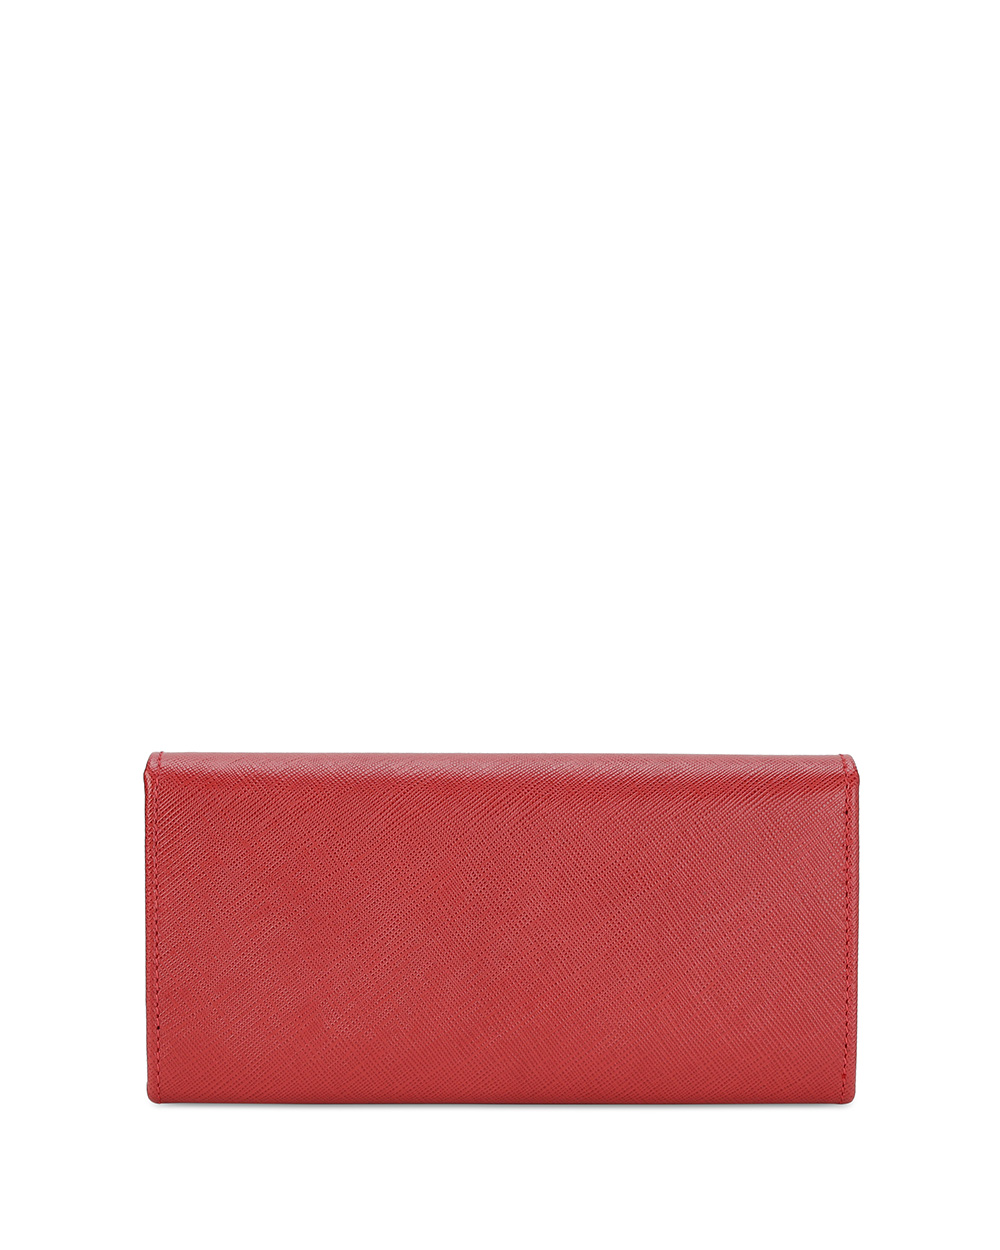 Logo Leather Long Wallet 2